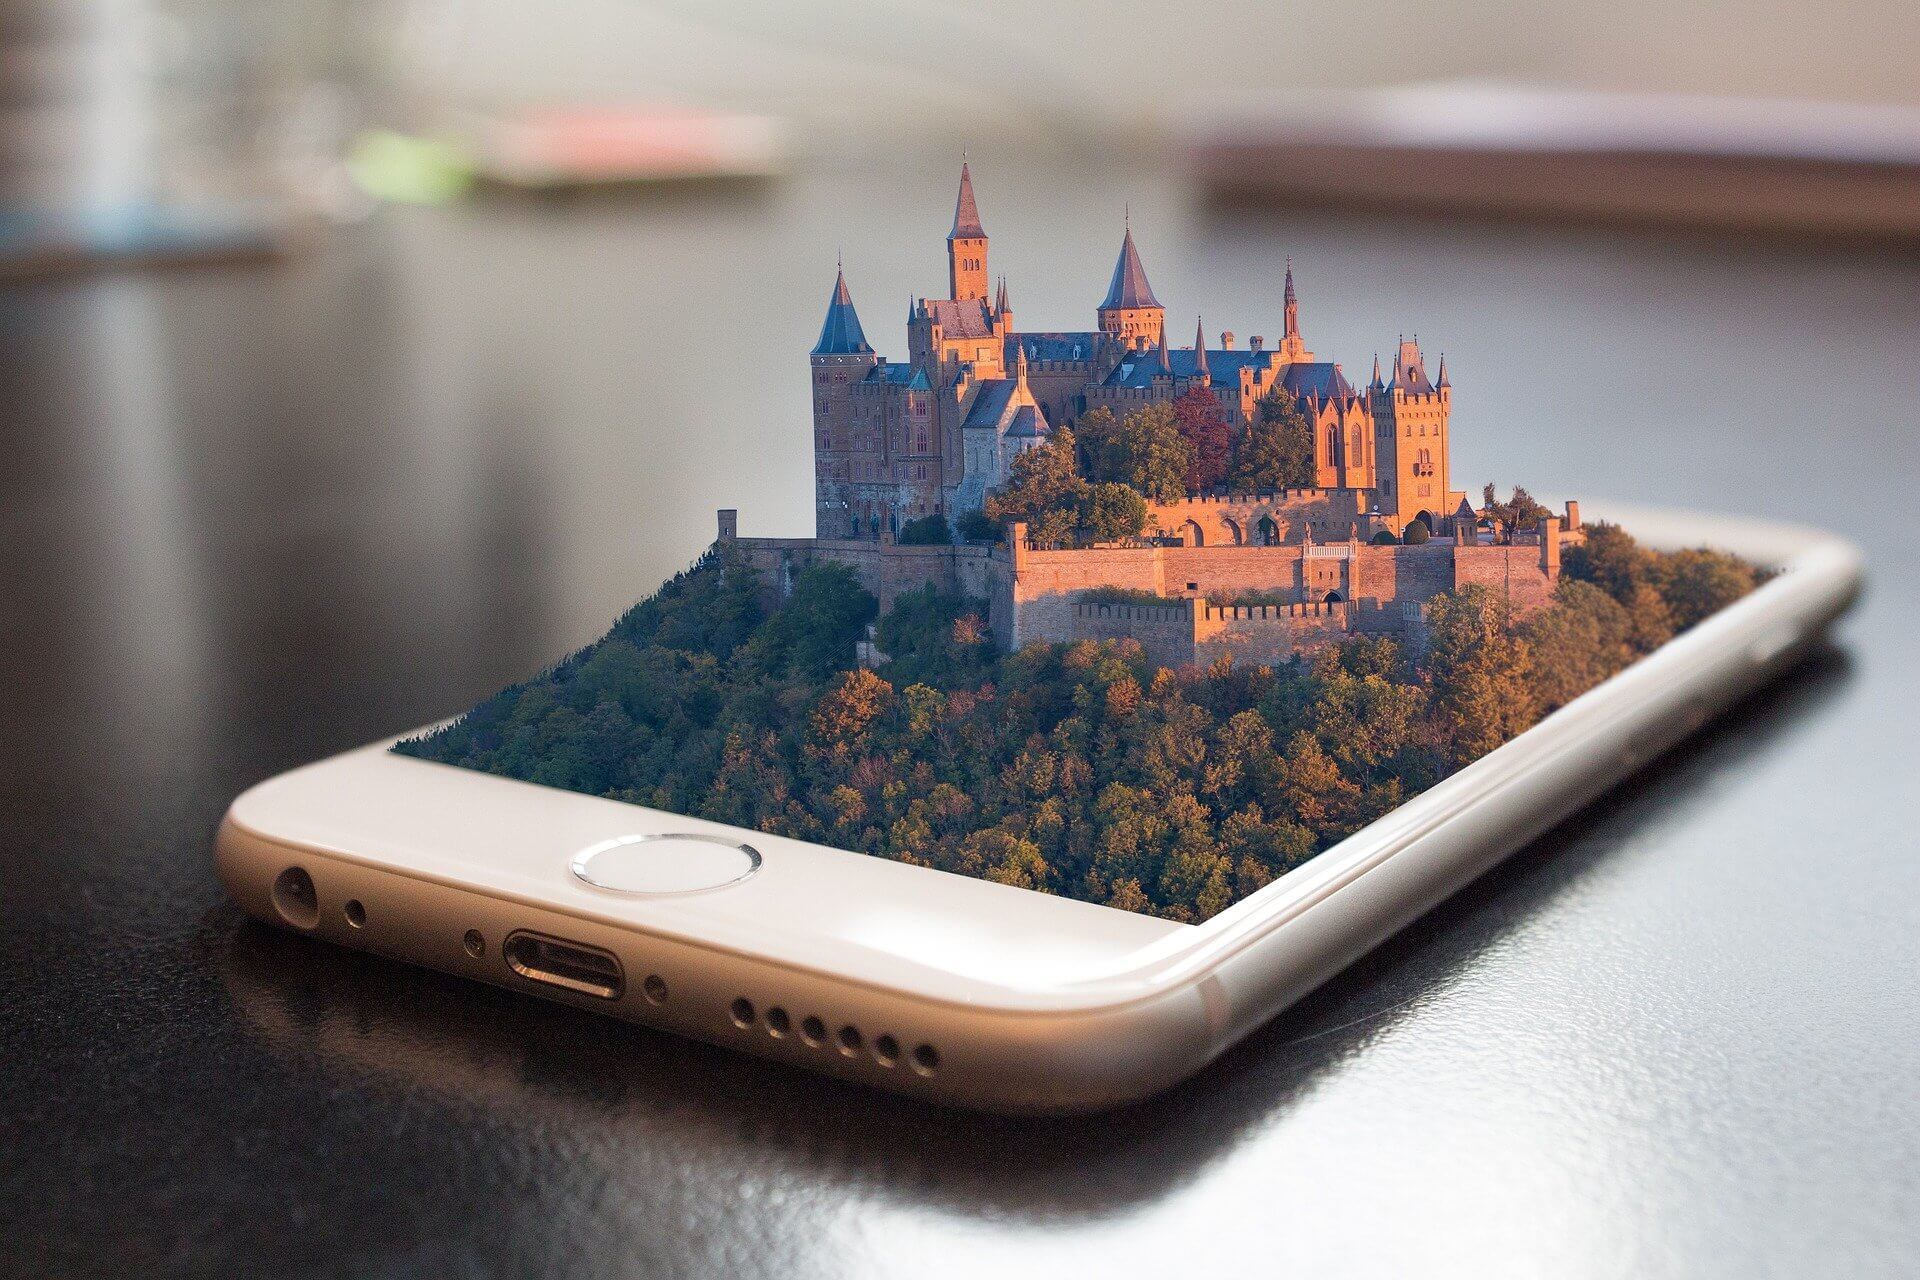 A virtual castle emerging from a cell phone screen